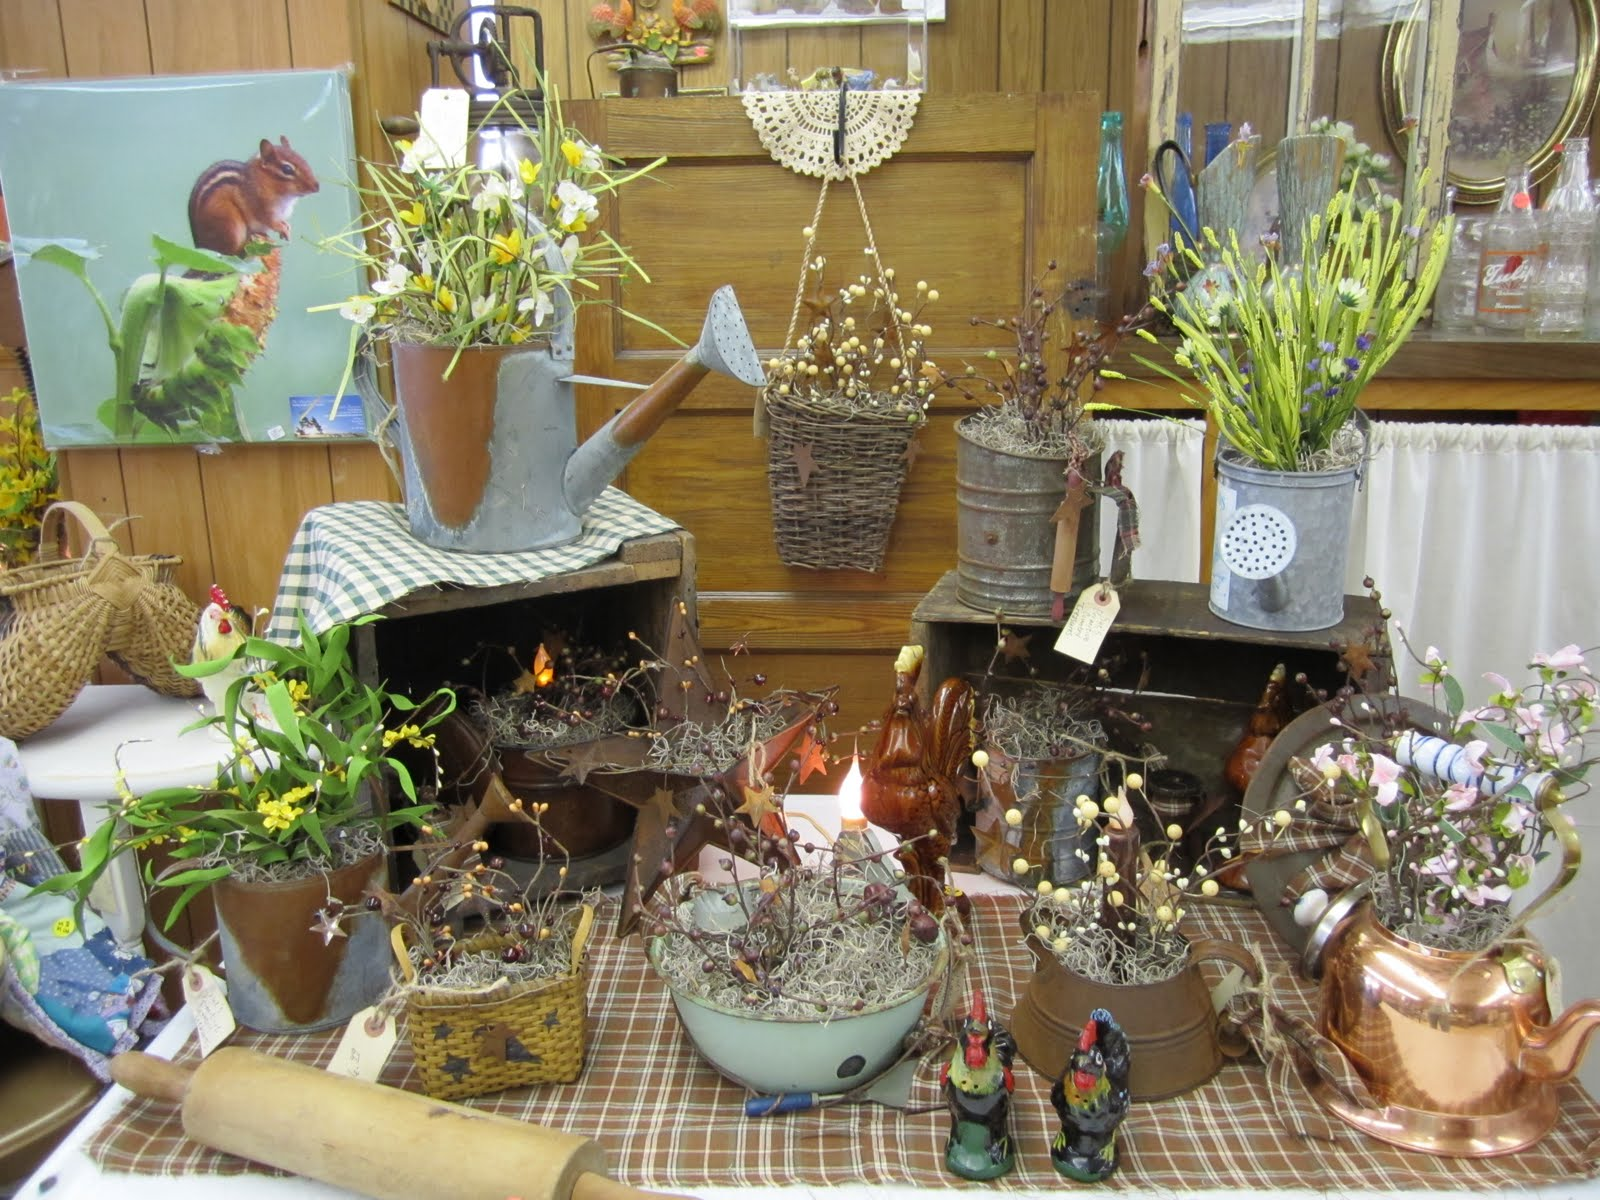 We Re Crushing On The Primitive Country Decor In This City: ~SuesJunkTreasures~: Sue's Primitive Country Treasures